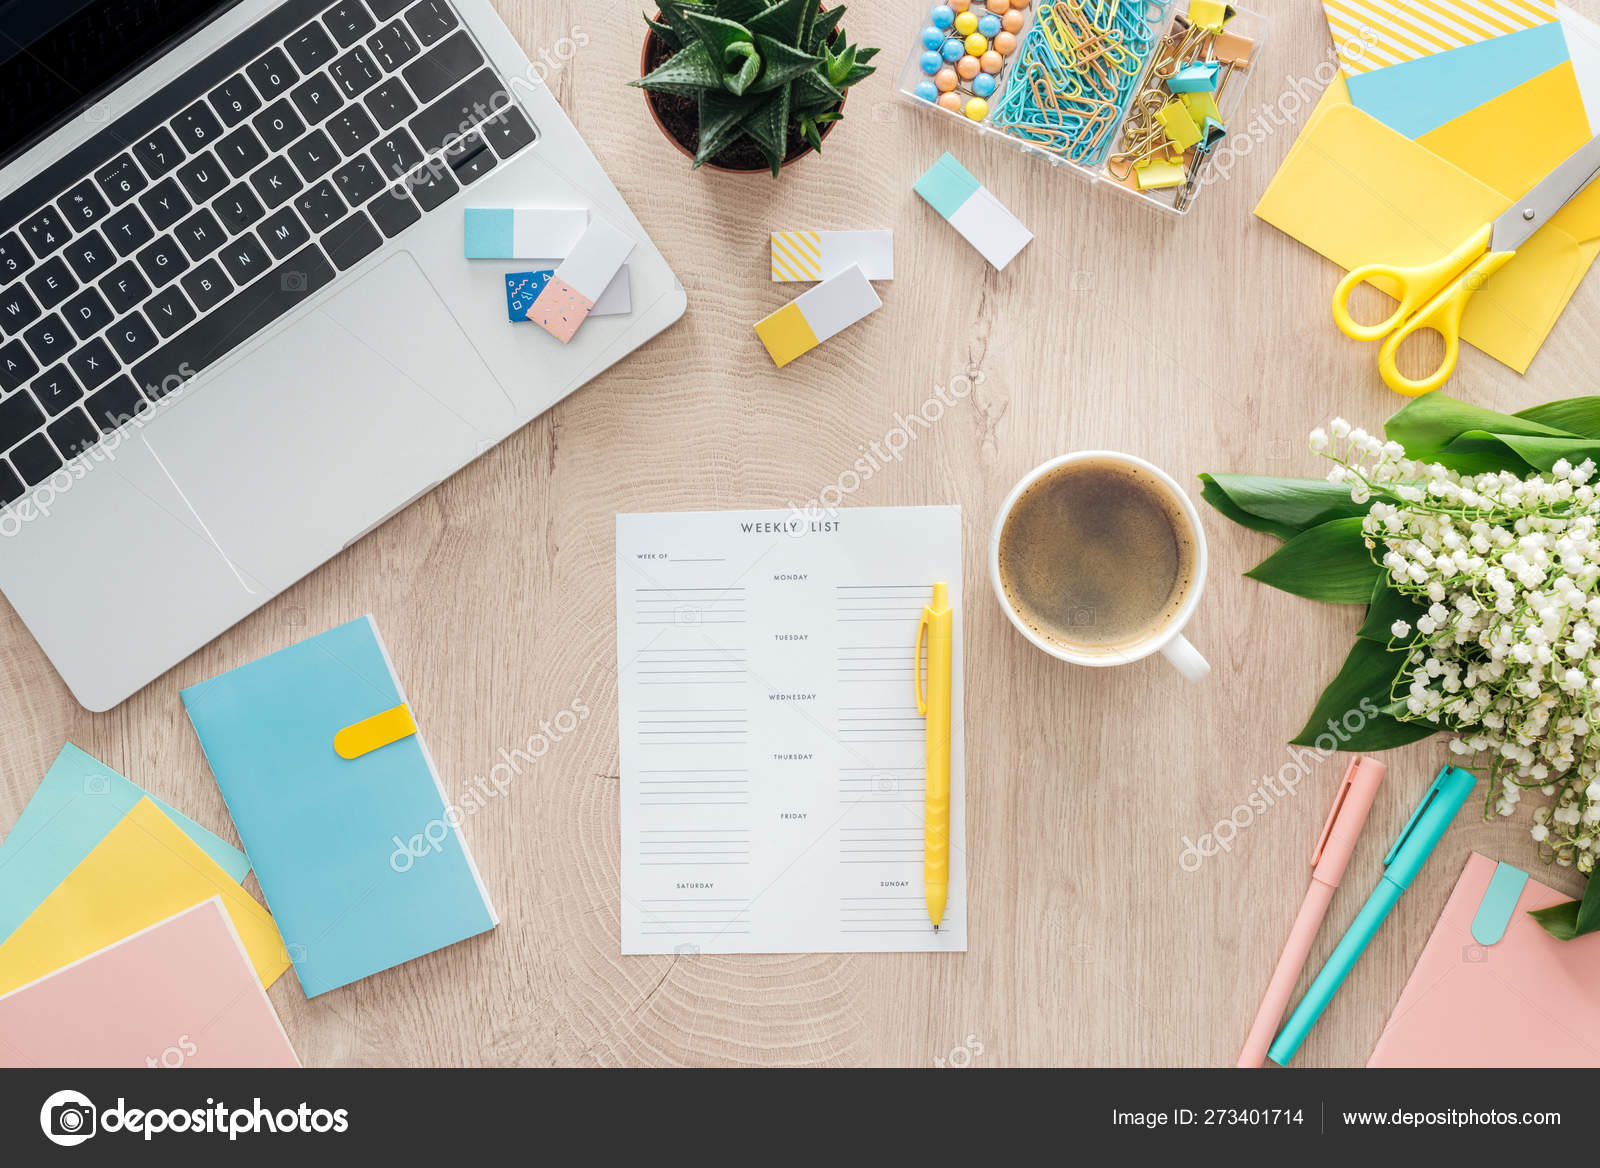 Top View Weekly List Cup Coffee Stationery Laptop Flowers Wooden Stock Photo, Image by VadimVasenin #273401714